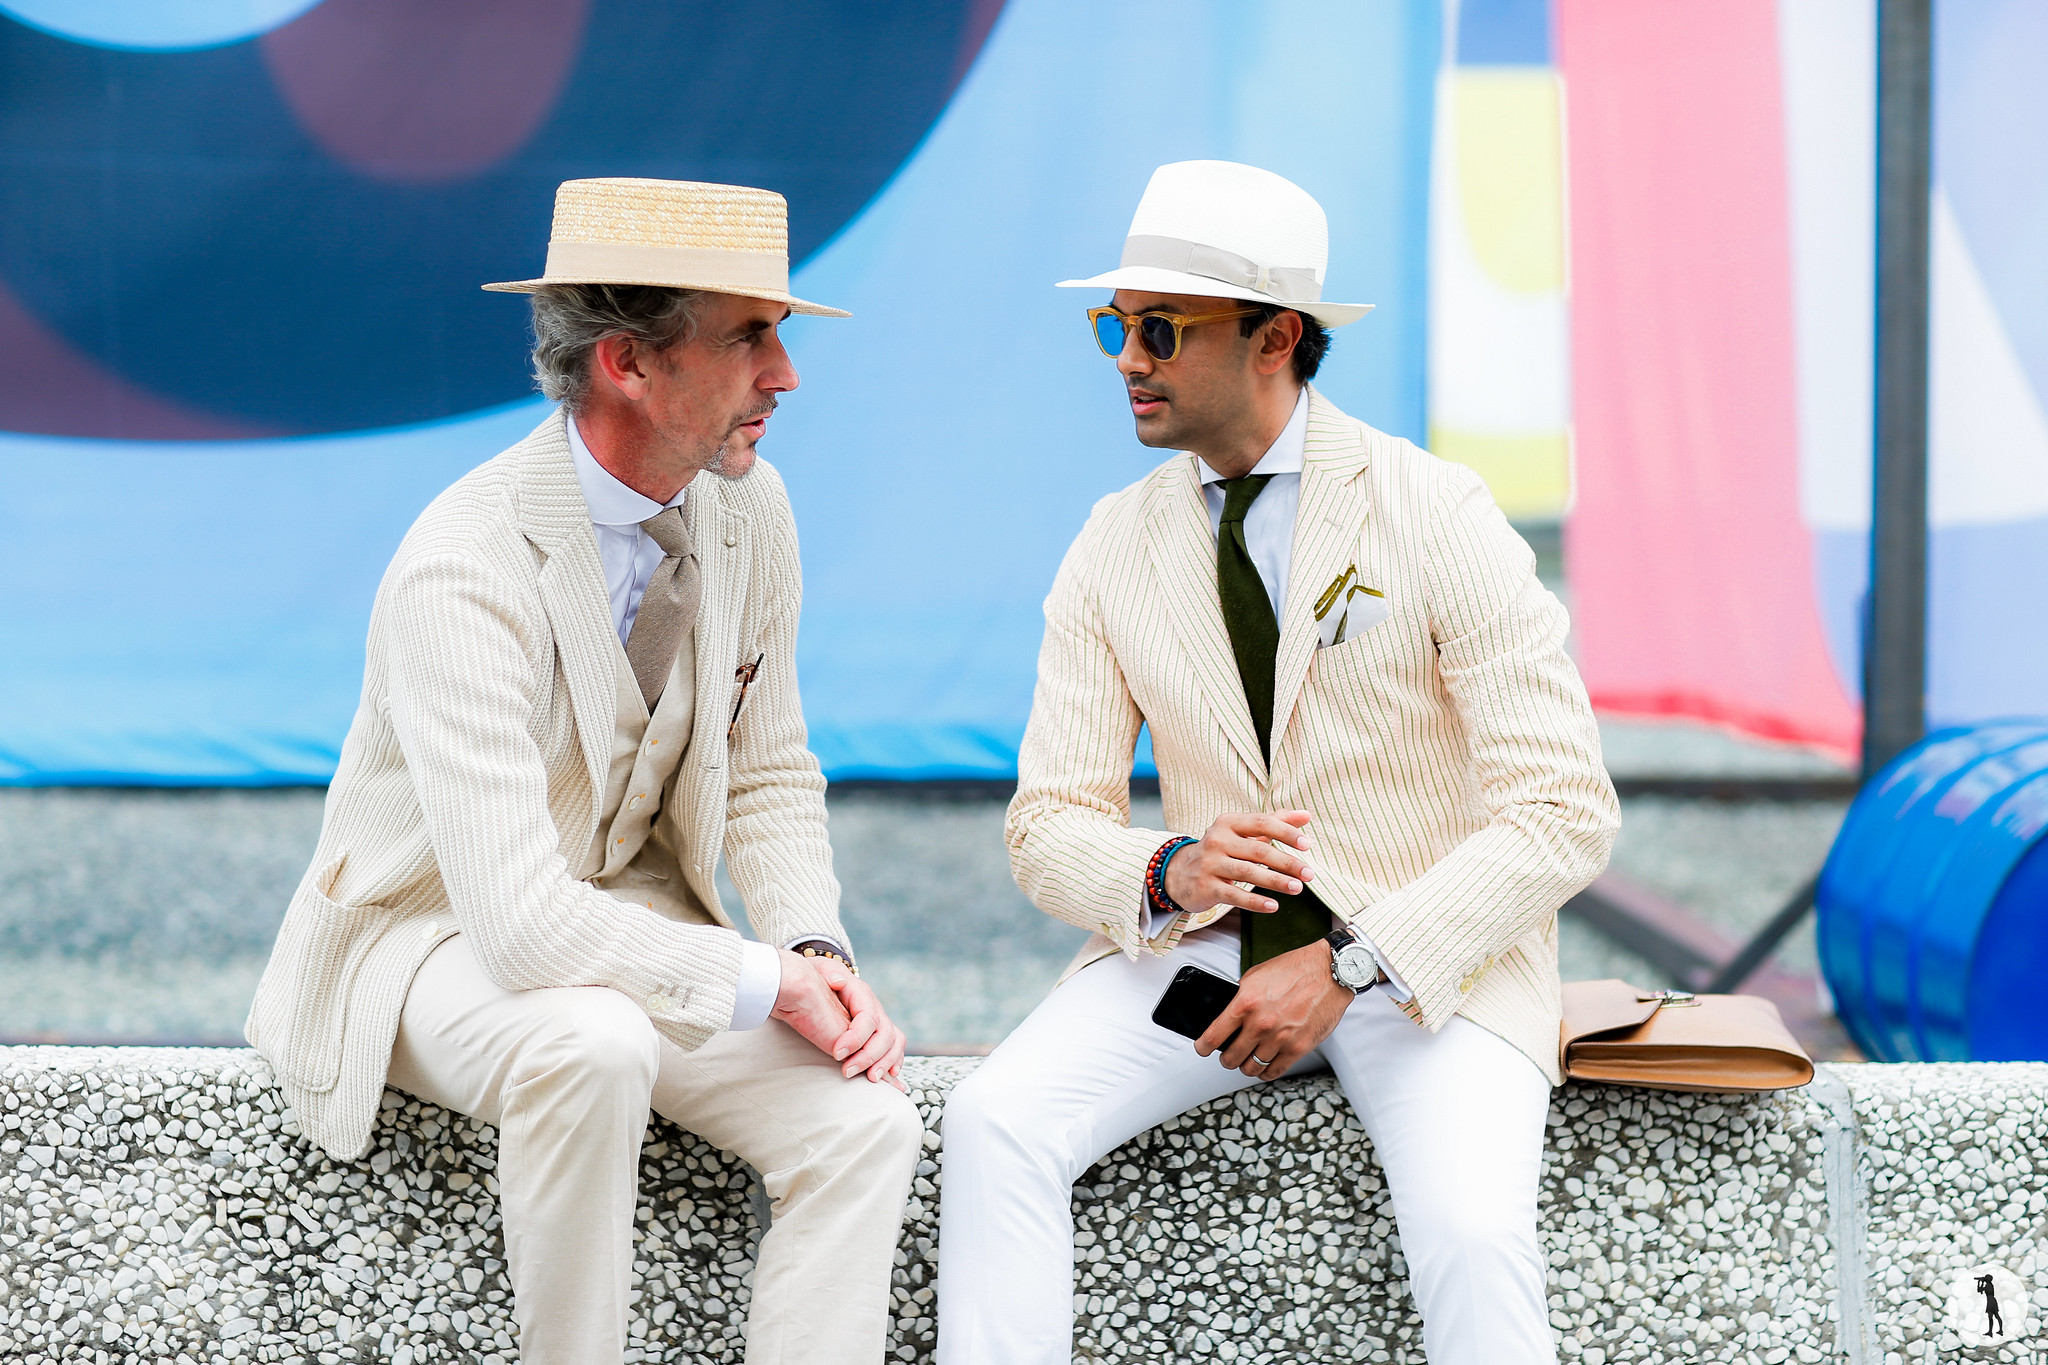 Guillaume Bo and Samir Imran - Pitti Uomo 90 (1)